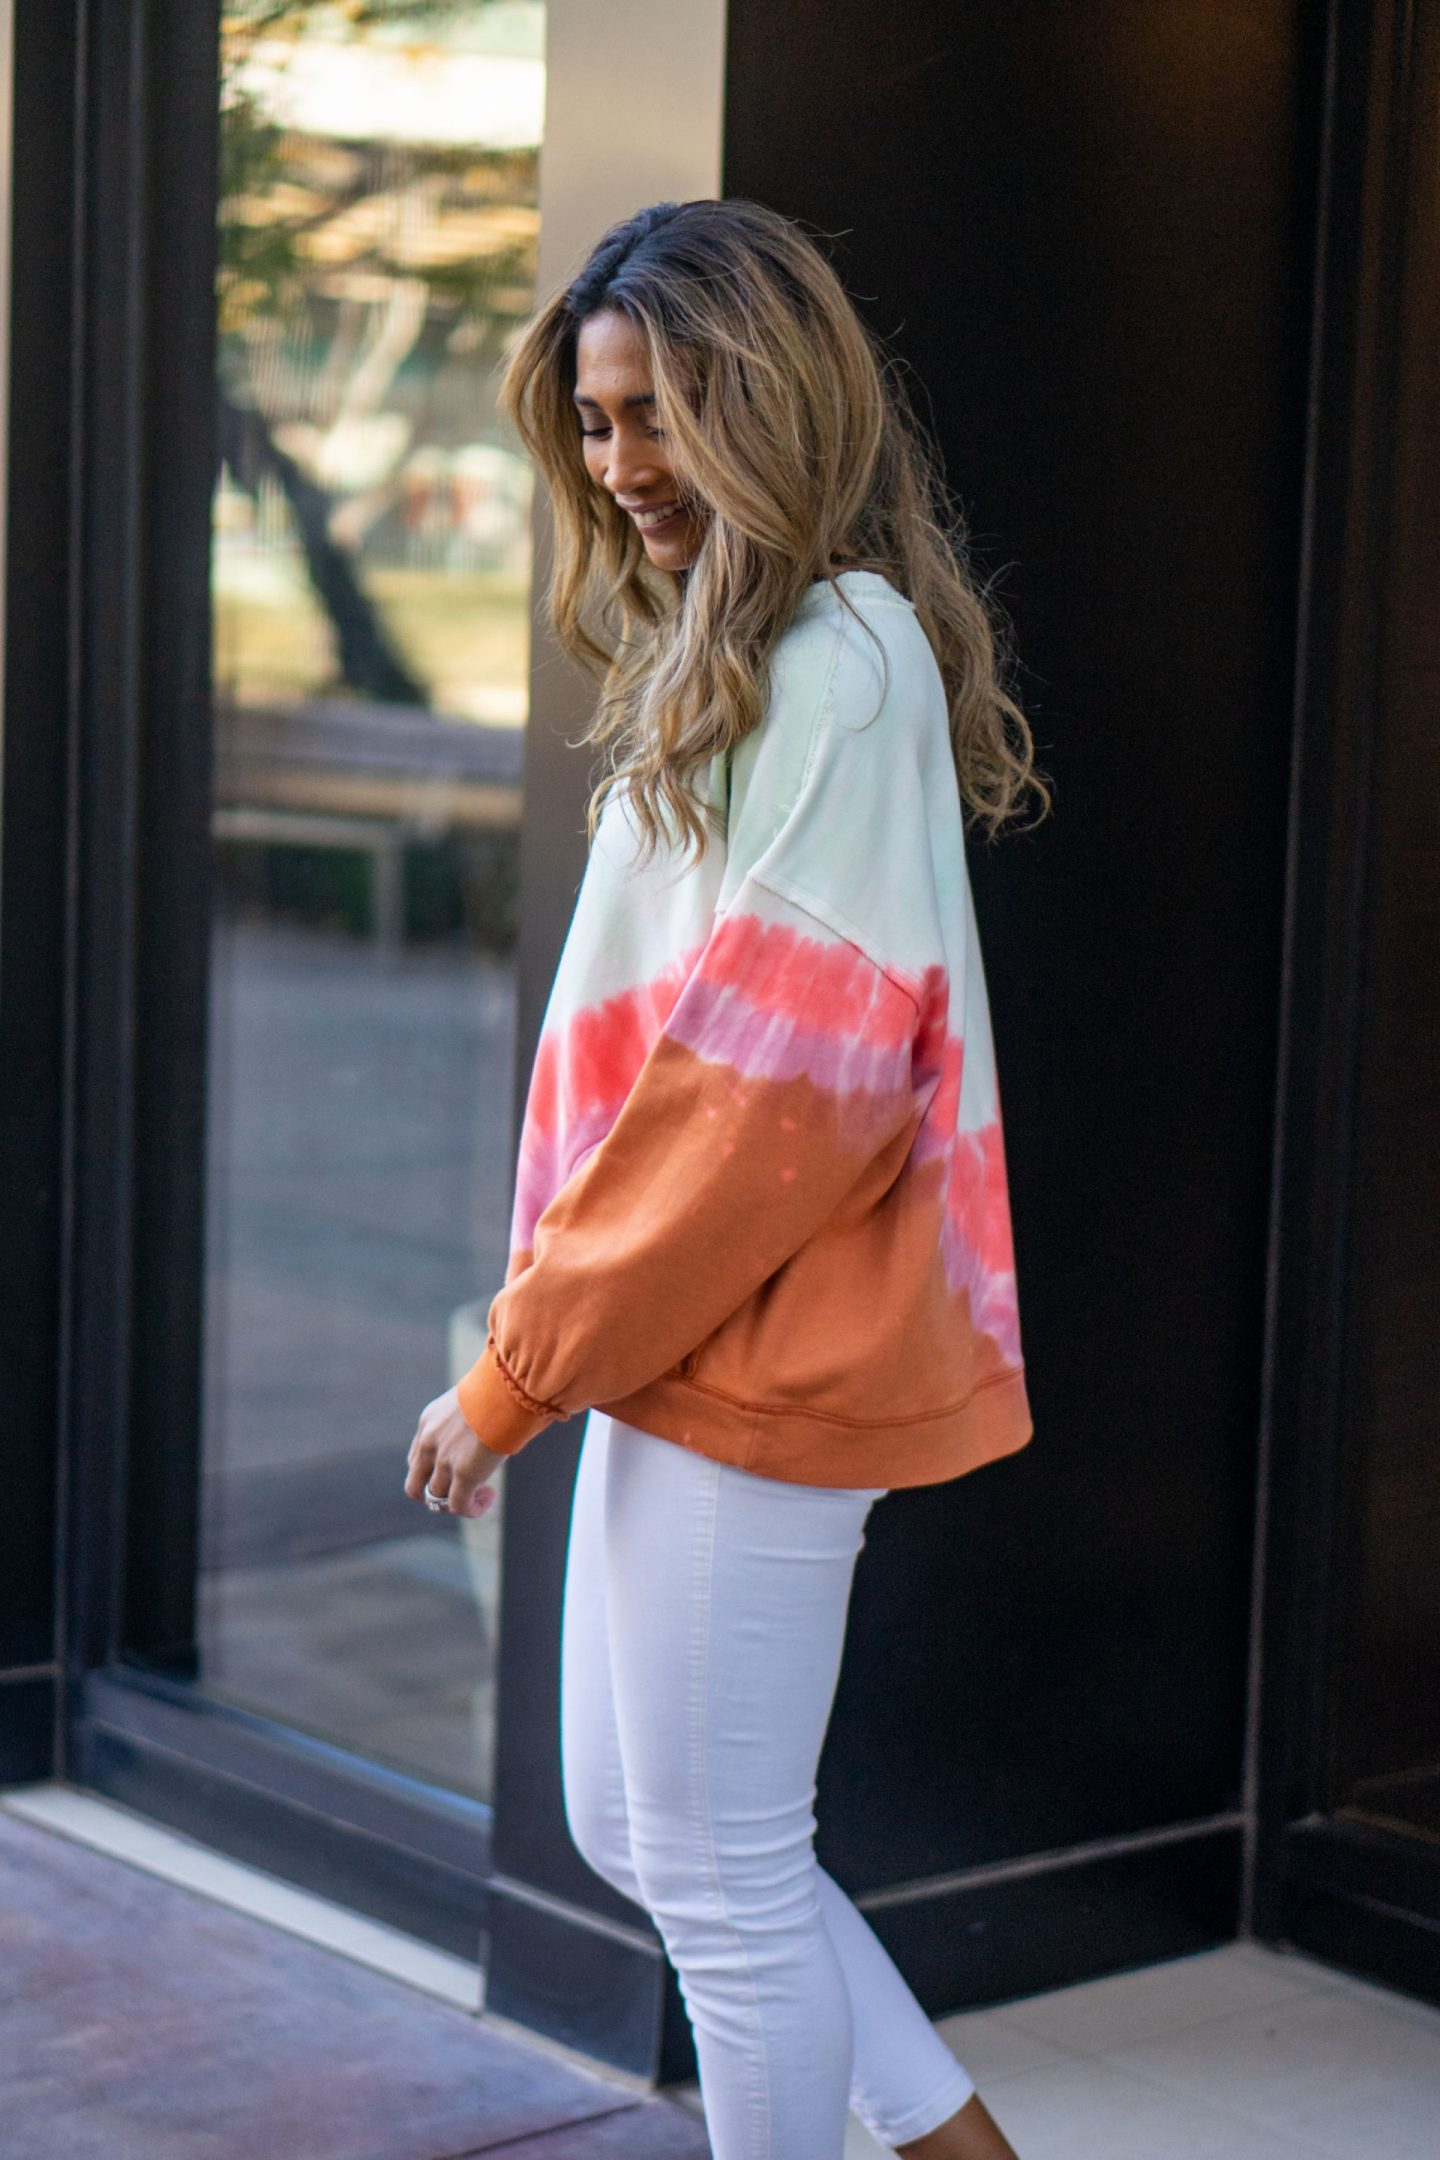 TIE DYED WOMENS TOP